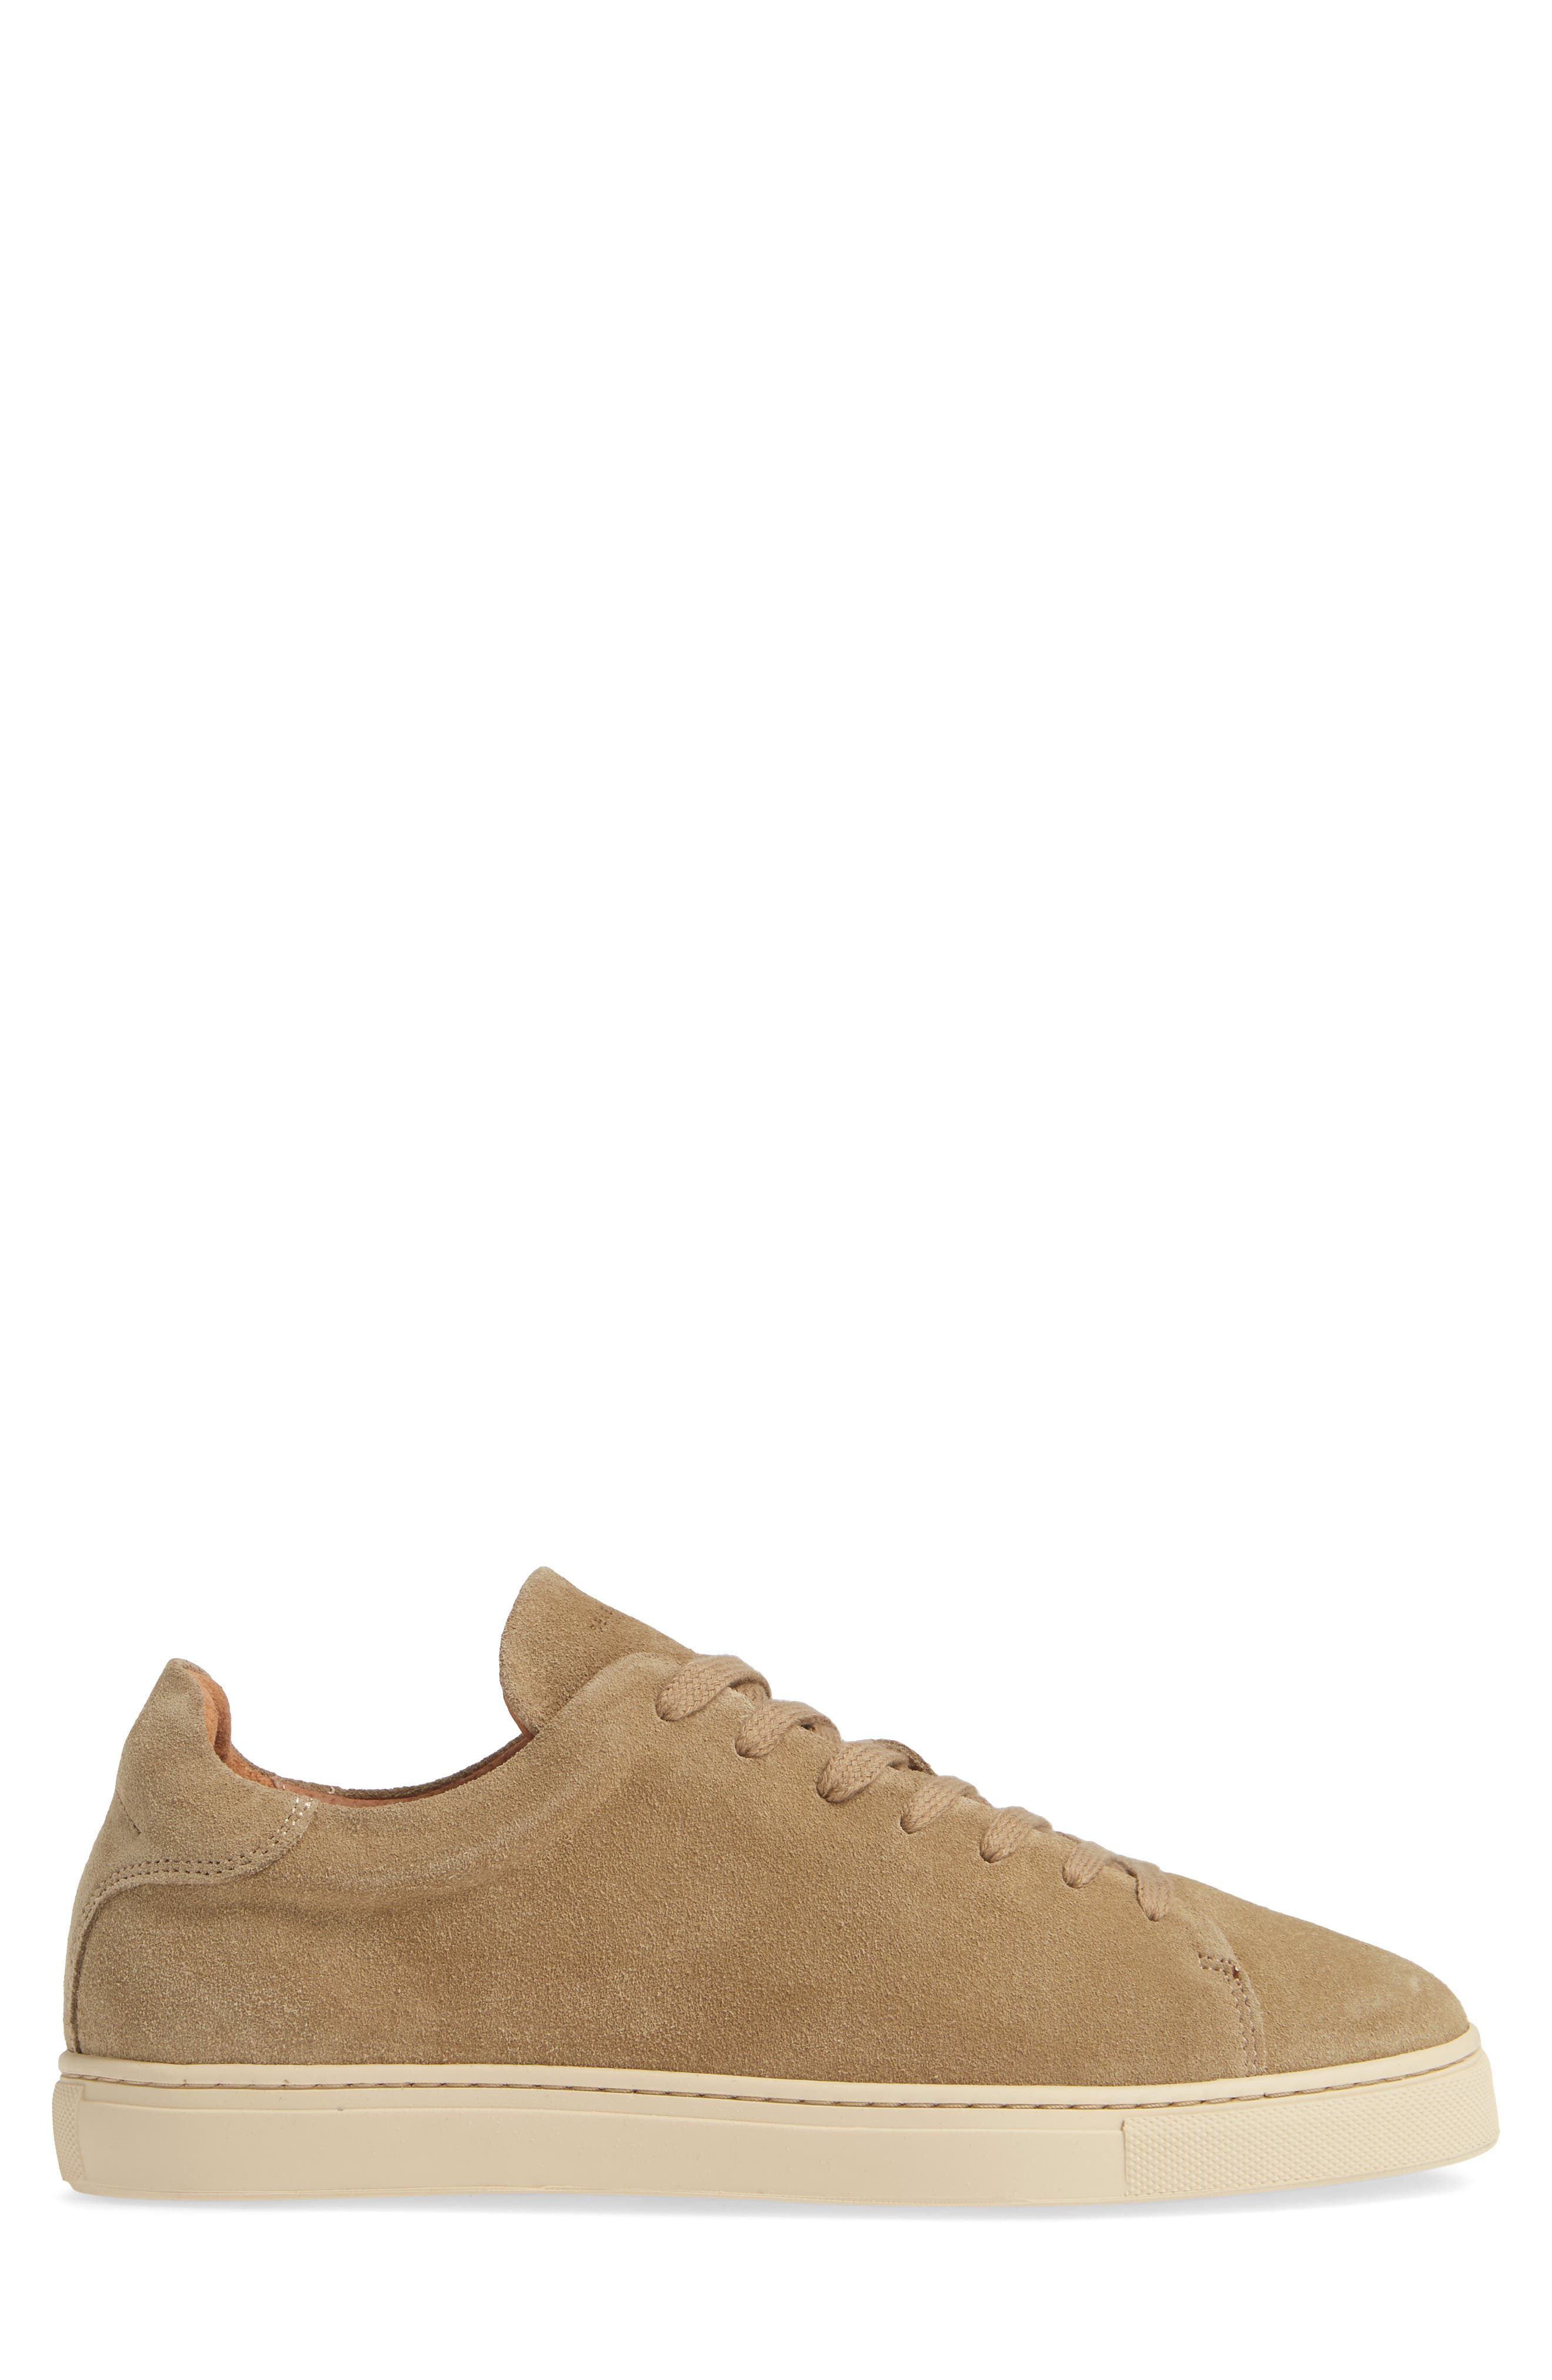 Selected Home David Low Top Sneaker,                             Alternate thumbnail 3, color,                             SAND SUEDE